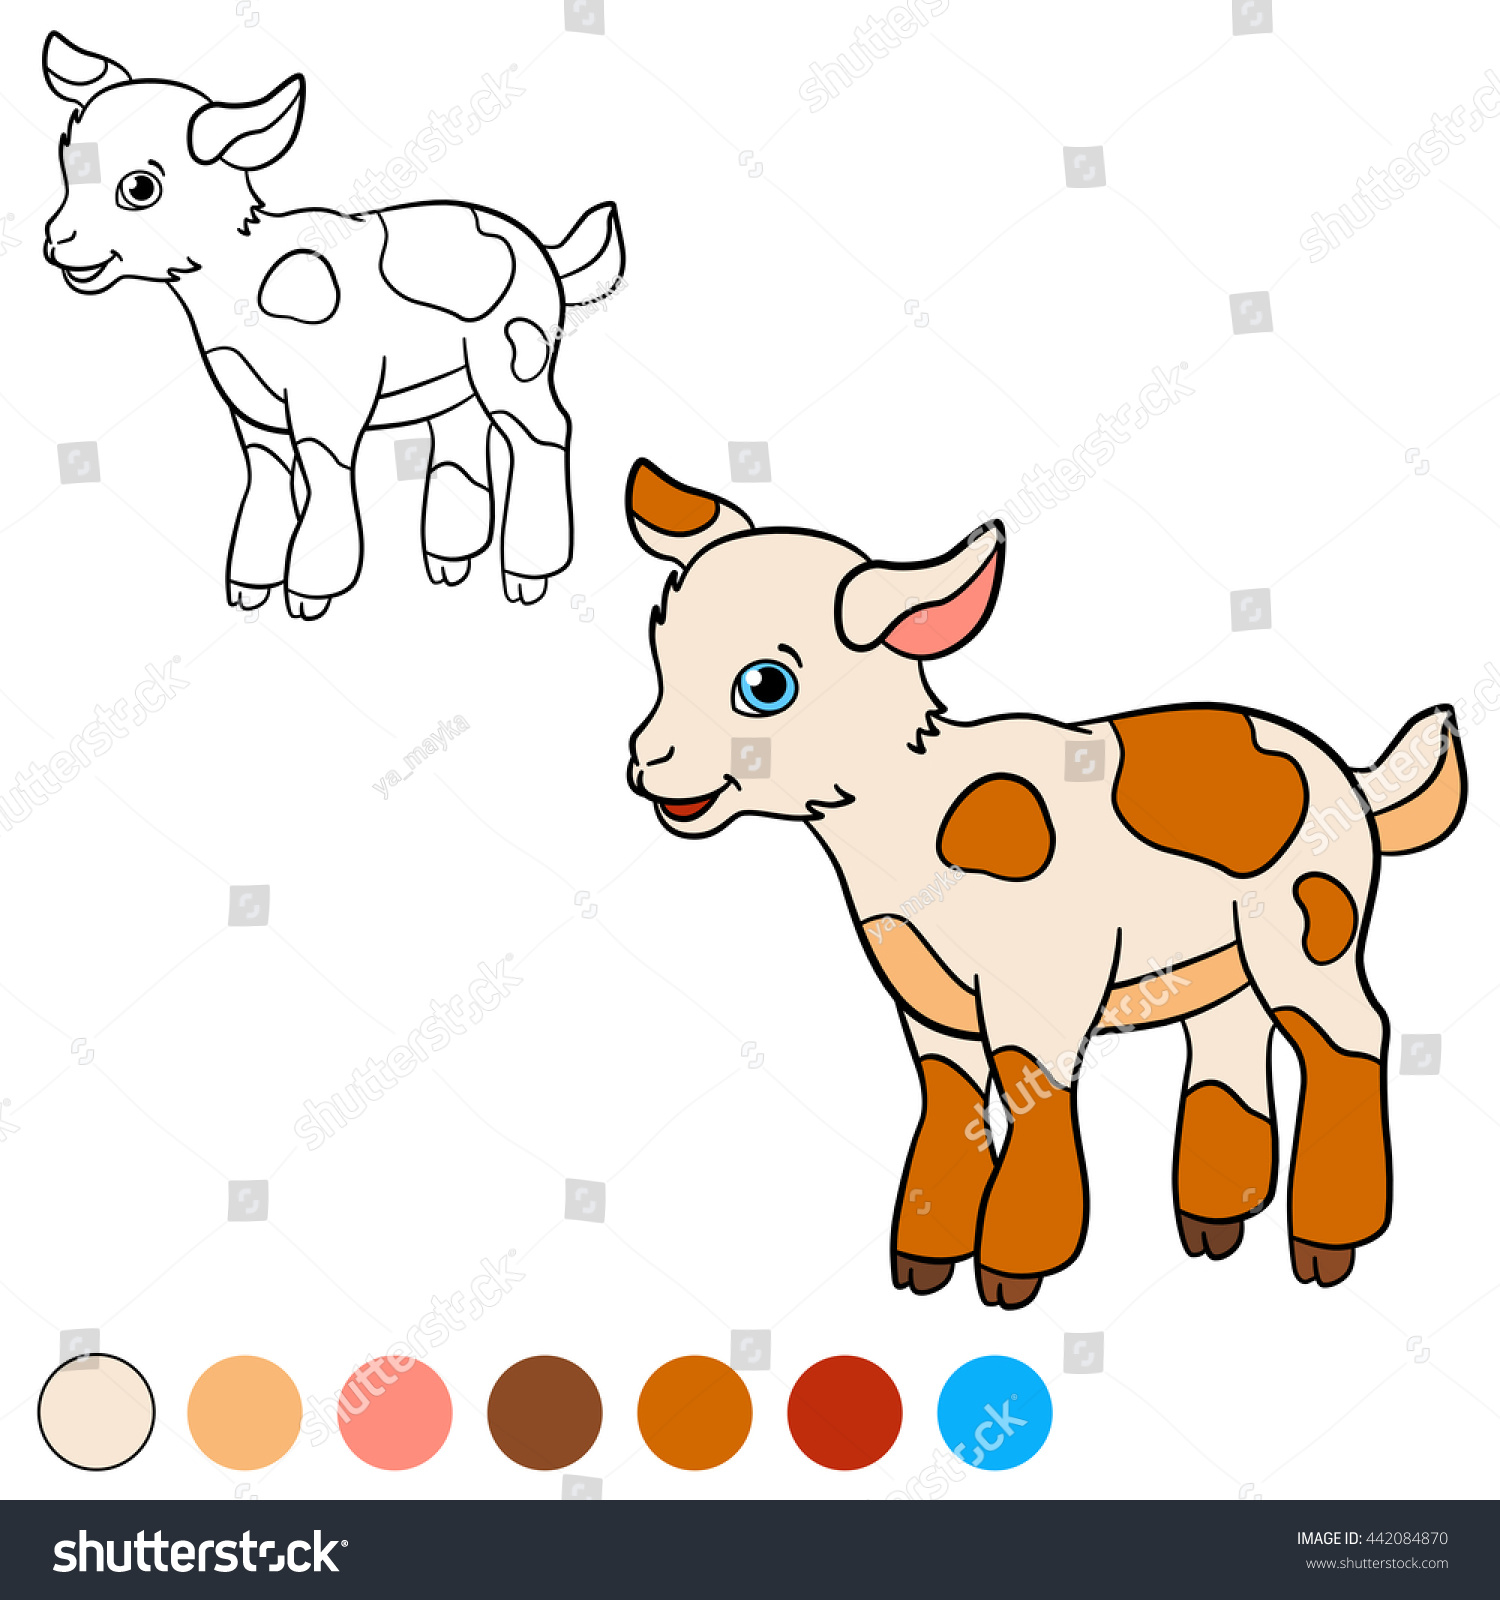 Coloring Page Color Me Goat Little Cute Baby Stands And Smiles